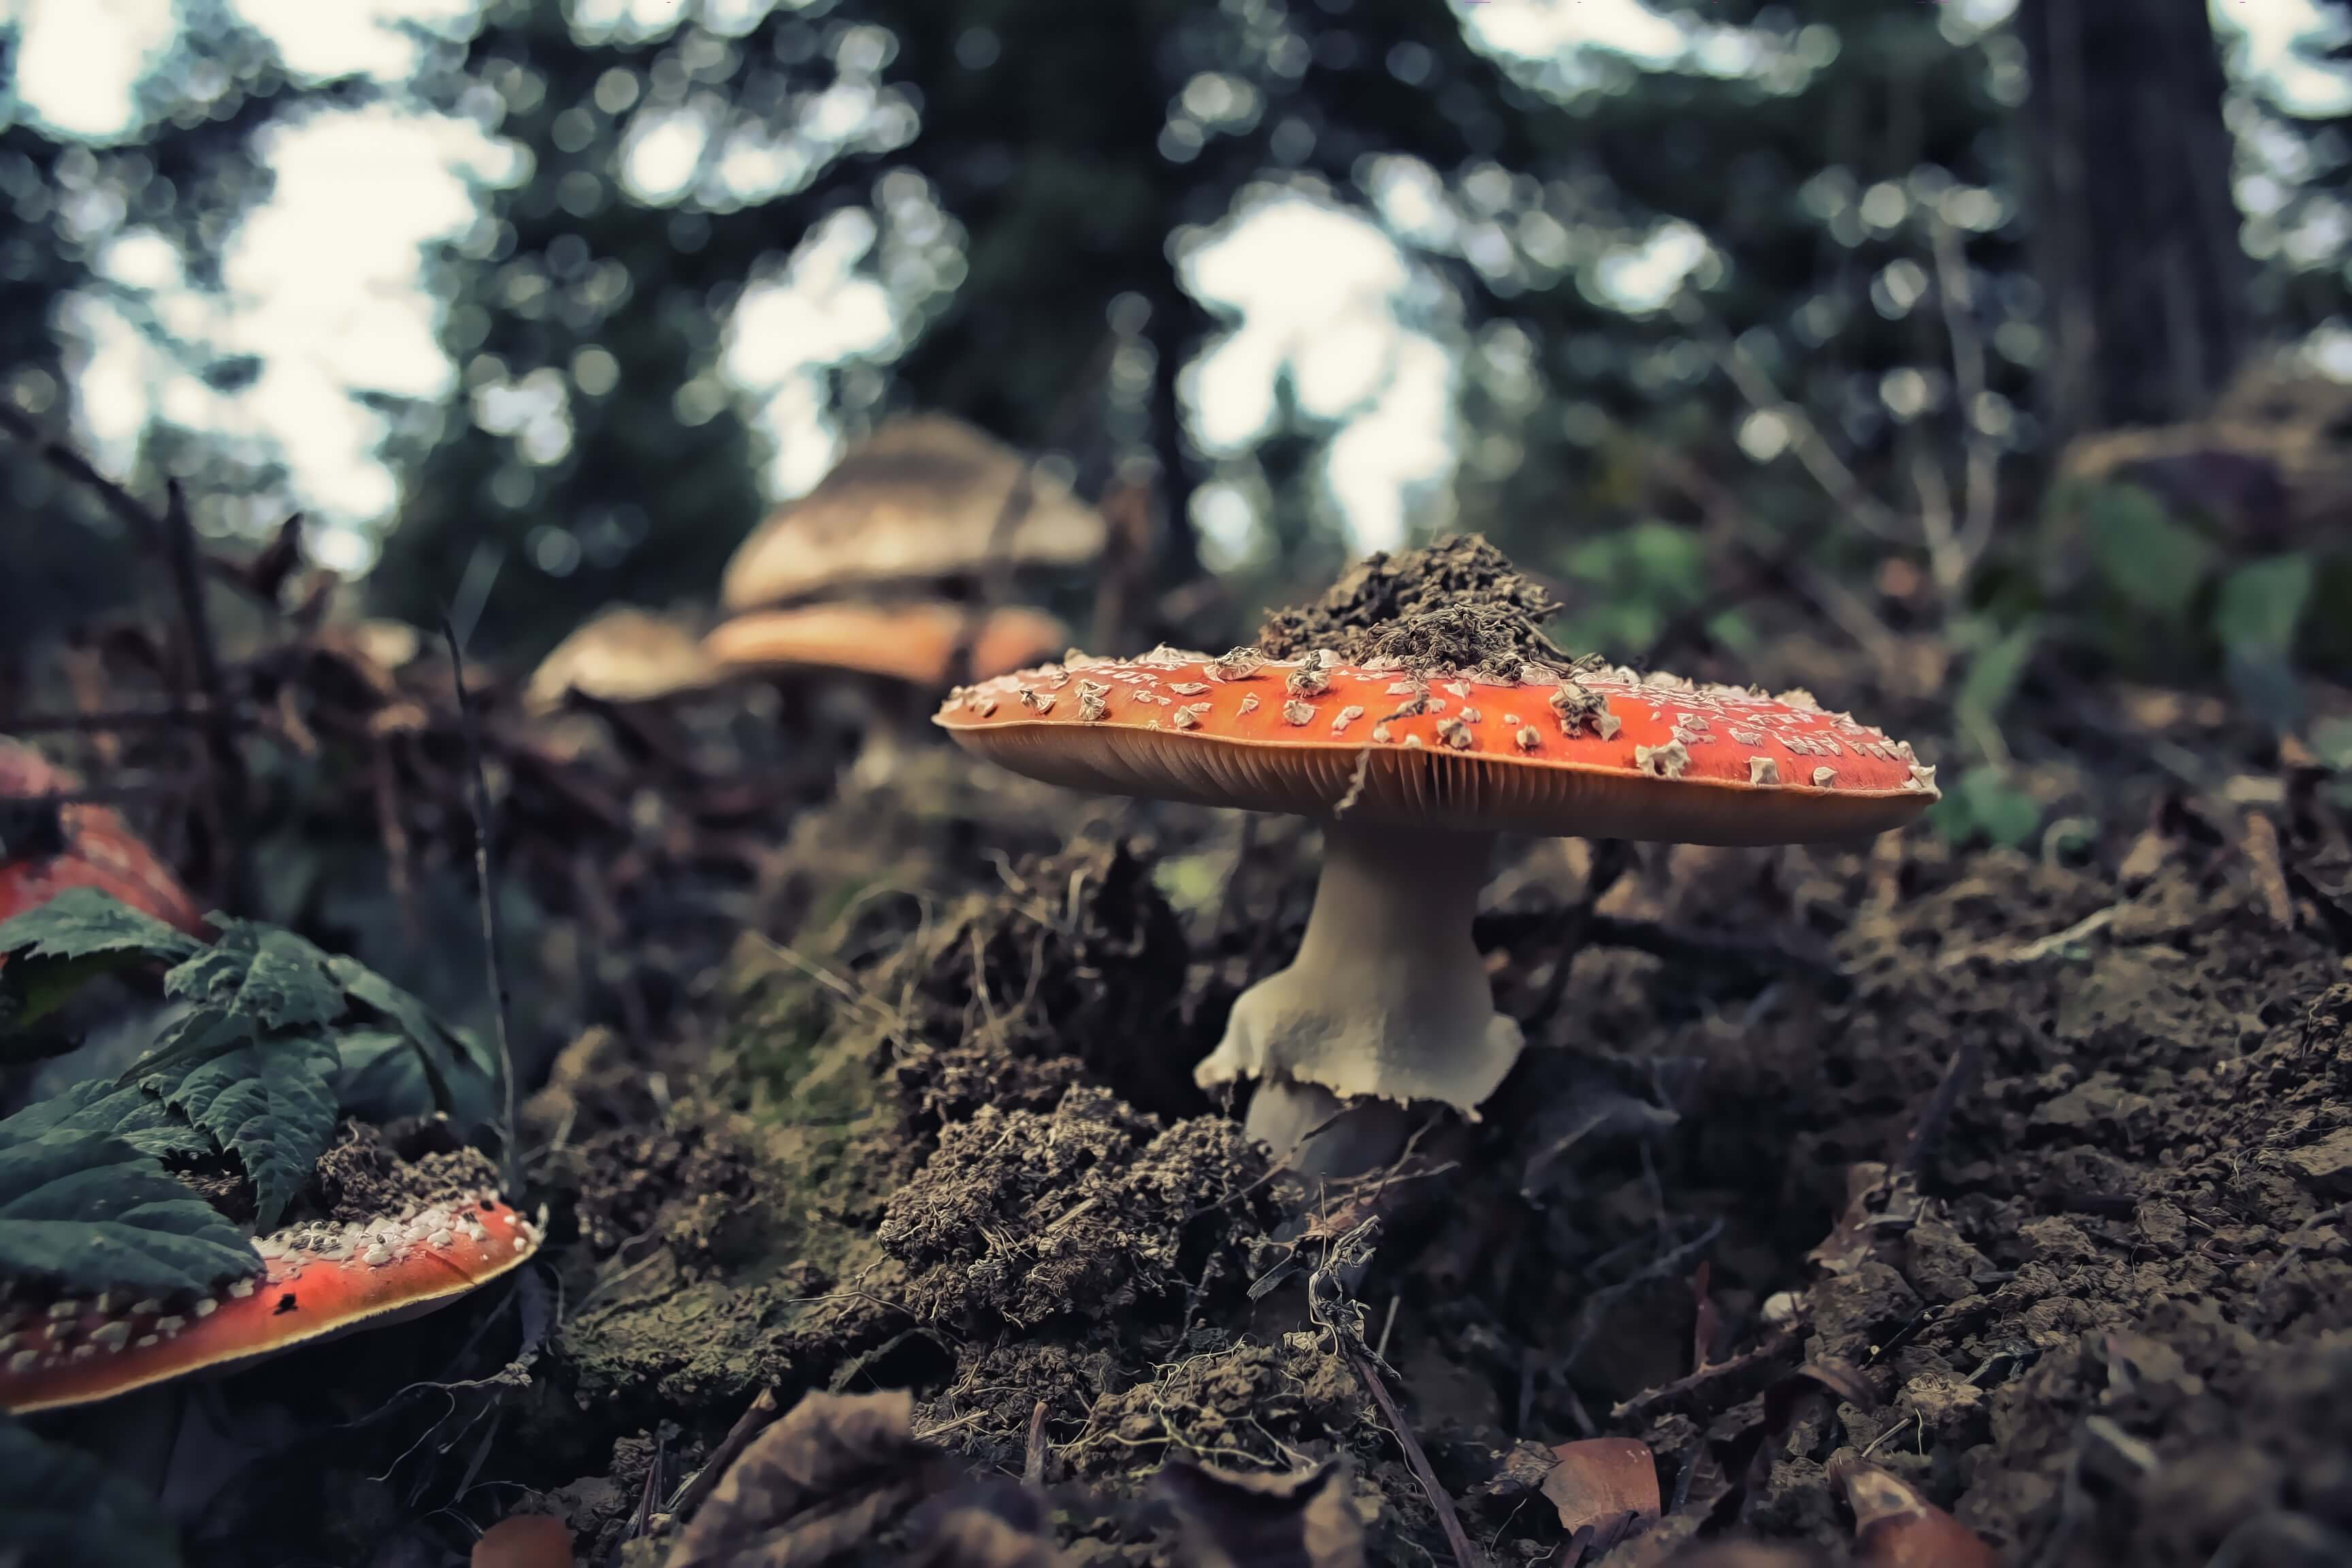 Mushroom on the forest floor.